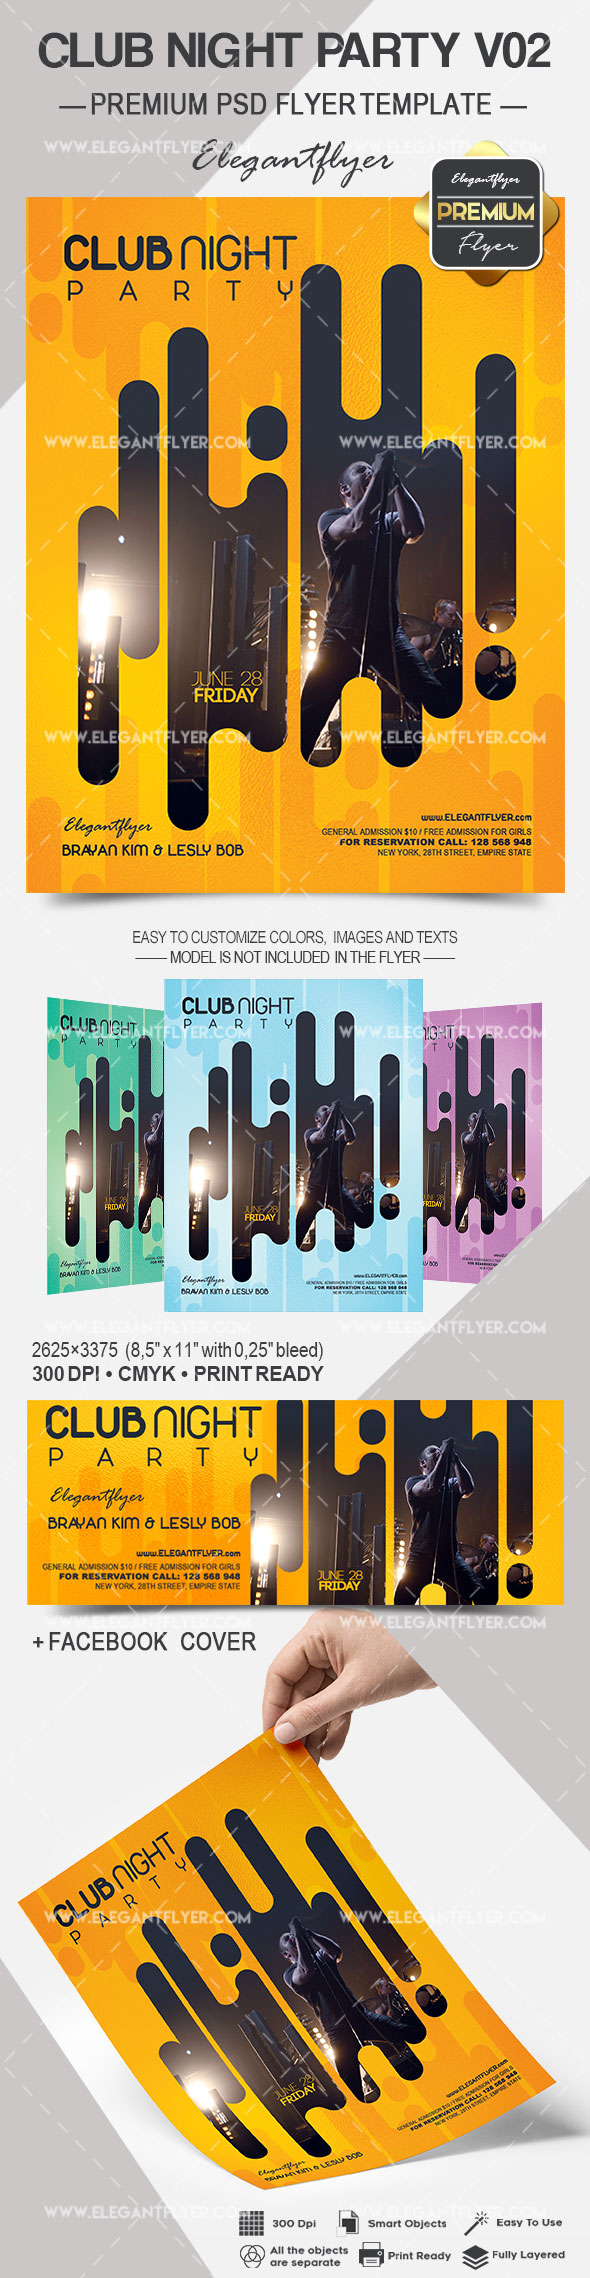 Club Night Party V02 – Premium Flyer PSD Template